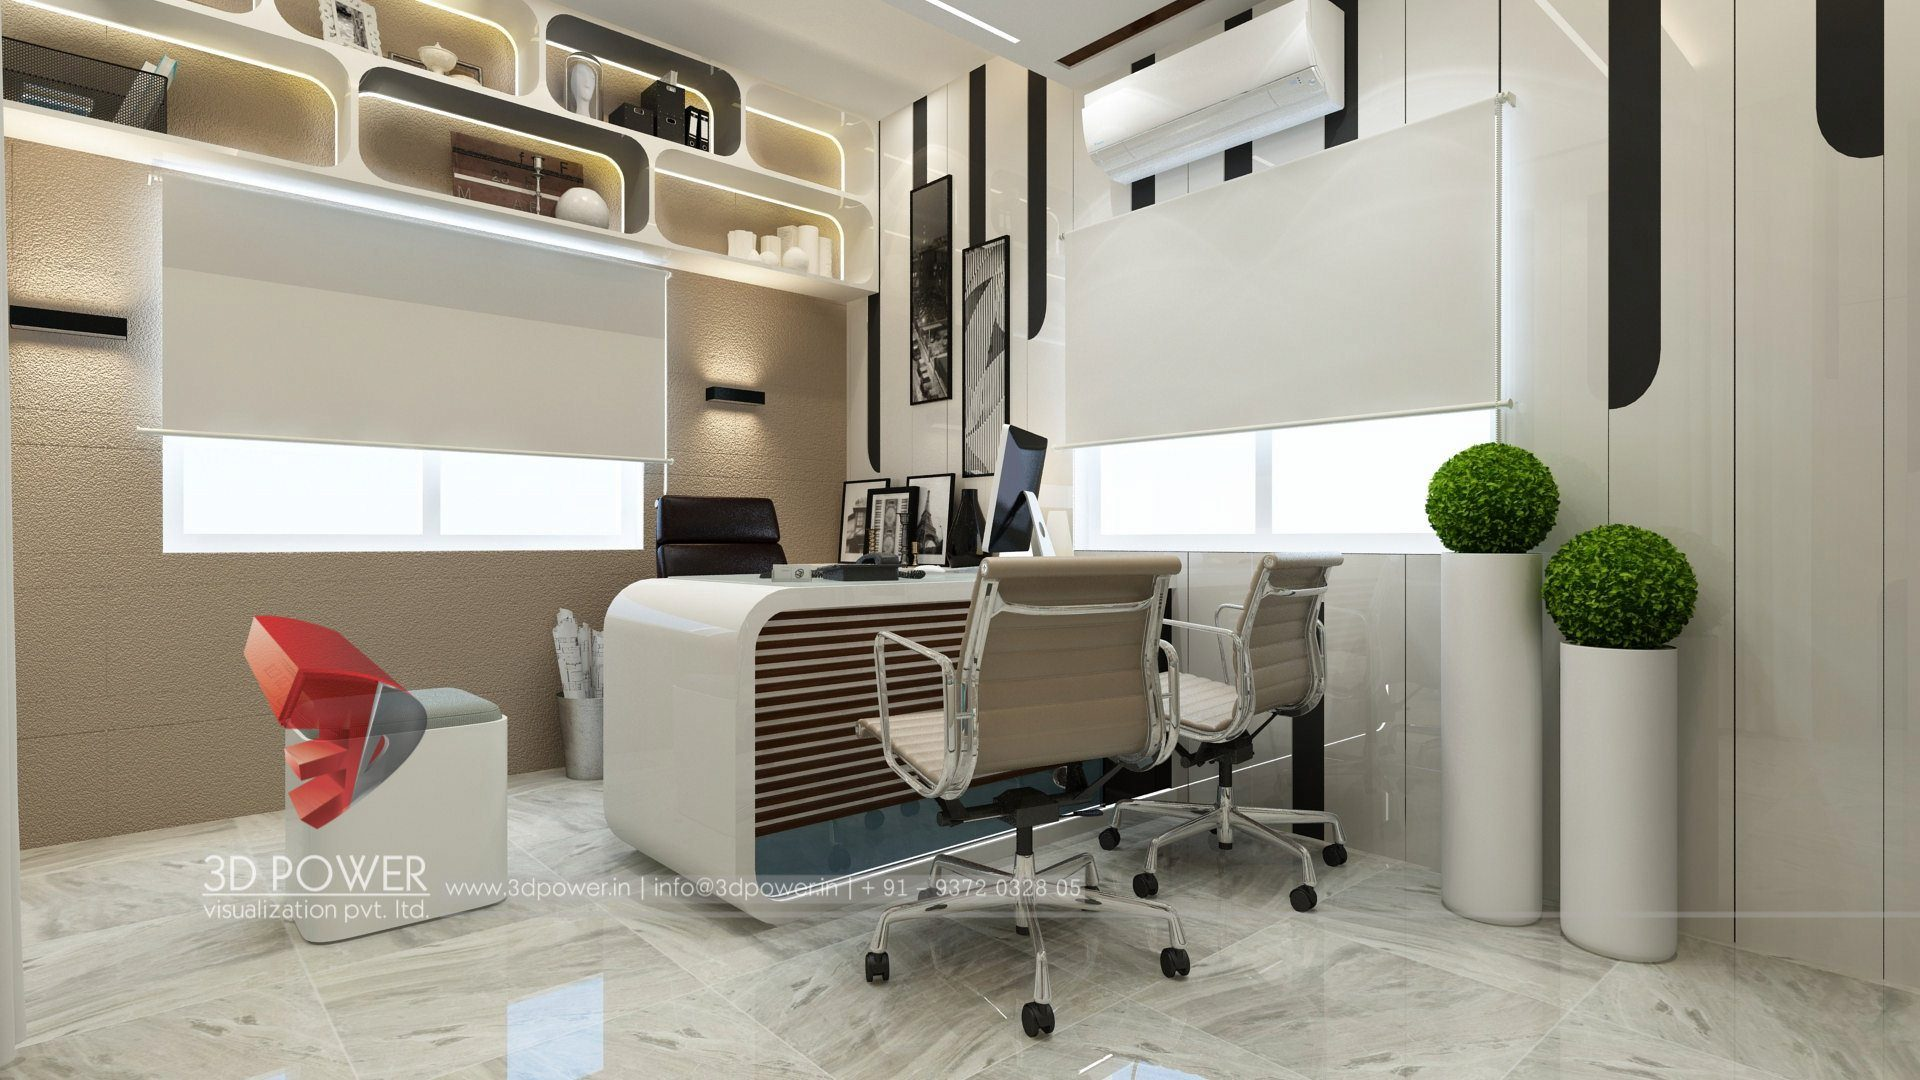 Office Interior Designer. Rendering Services Office Interior Design Office  Interior Designer